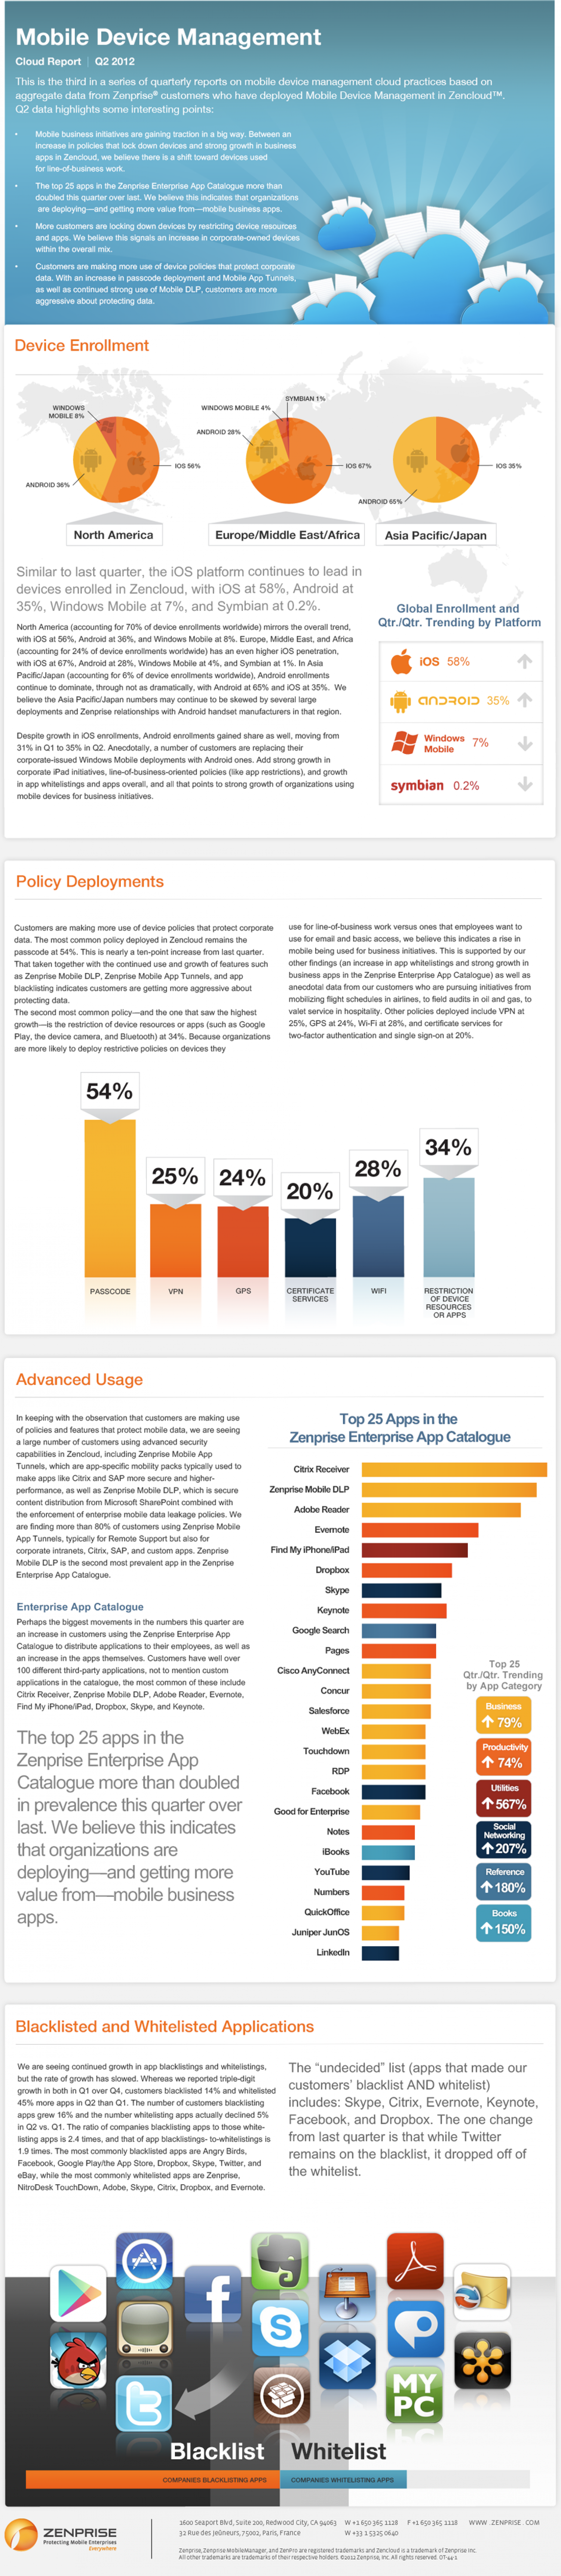 Mobile Device Management Cloud Report - Q2 2012 Infographic